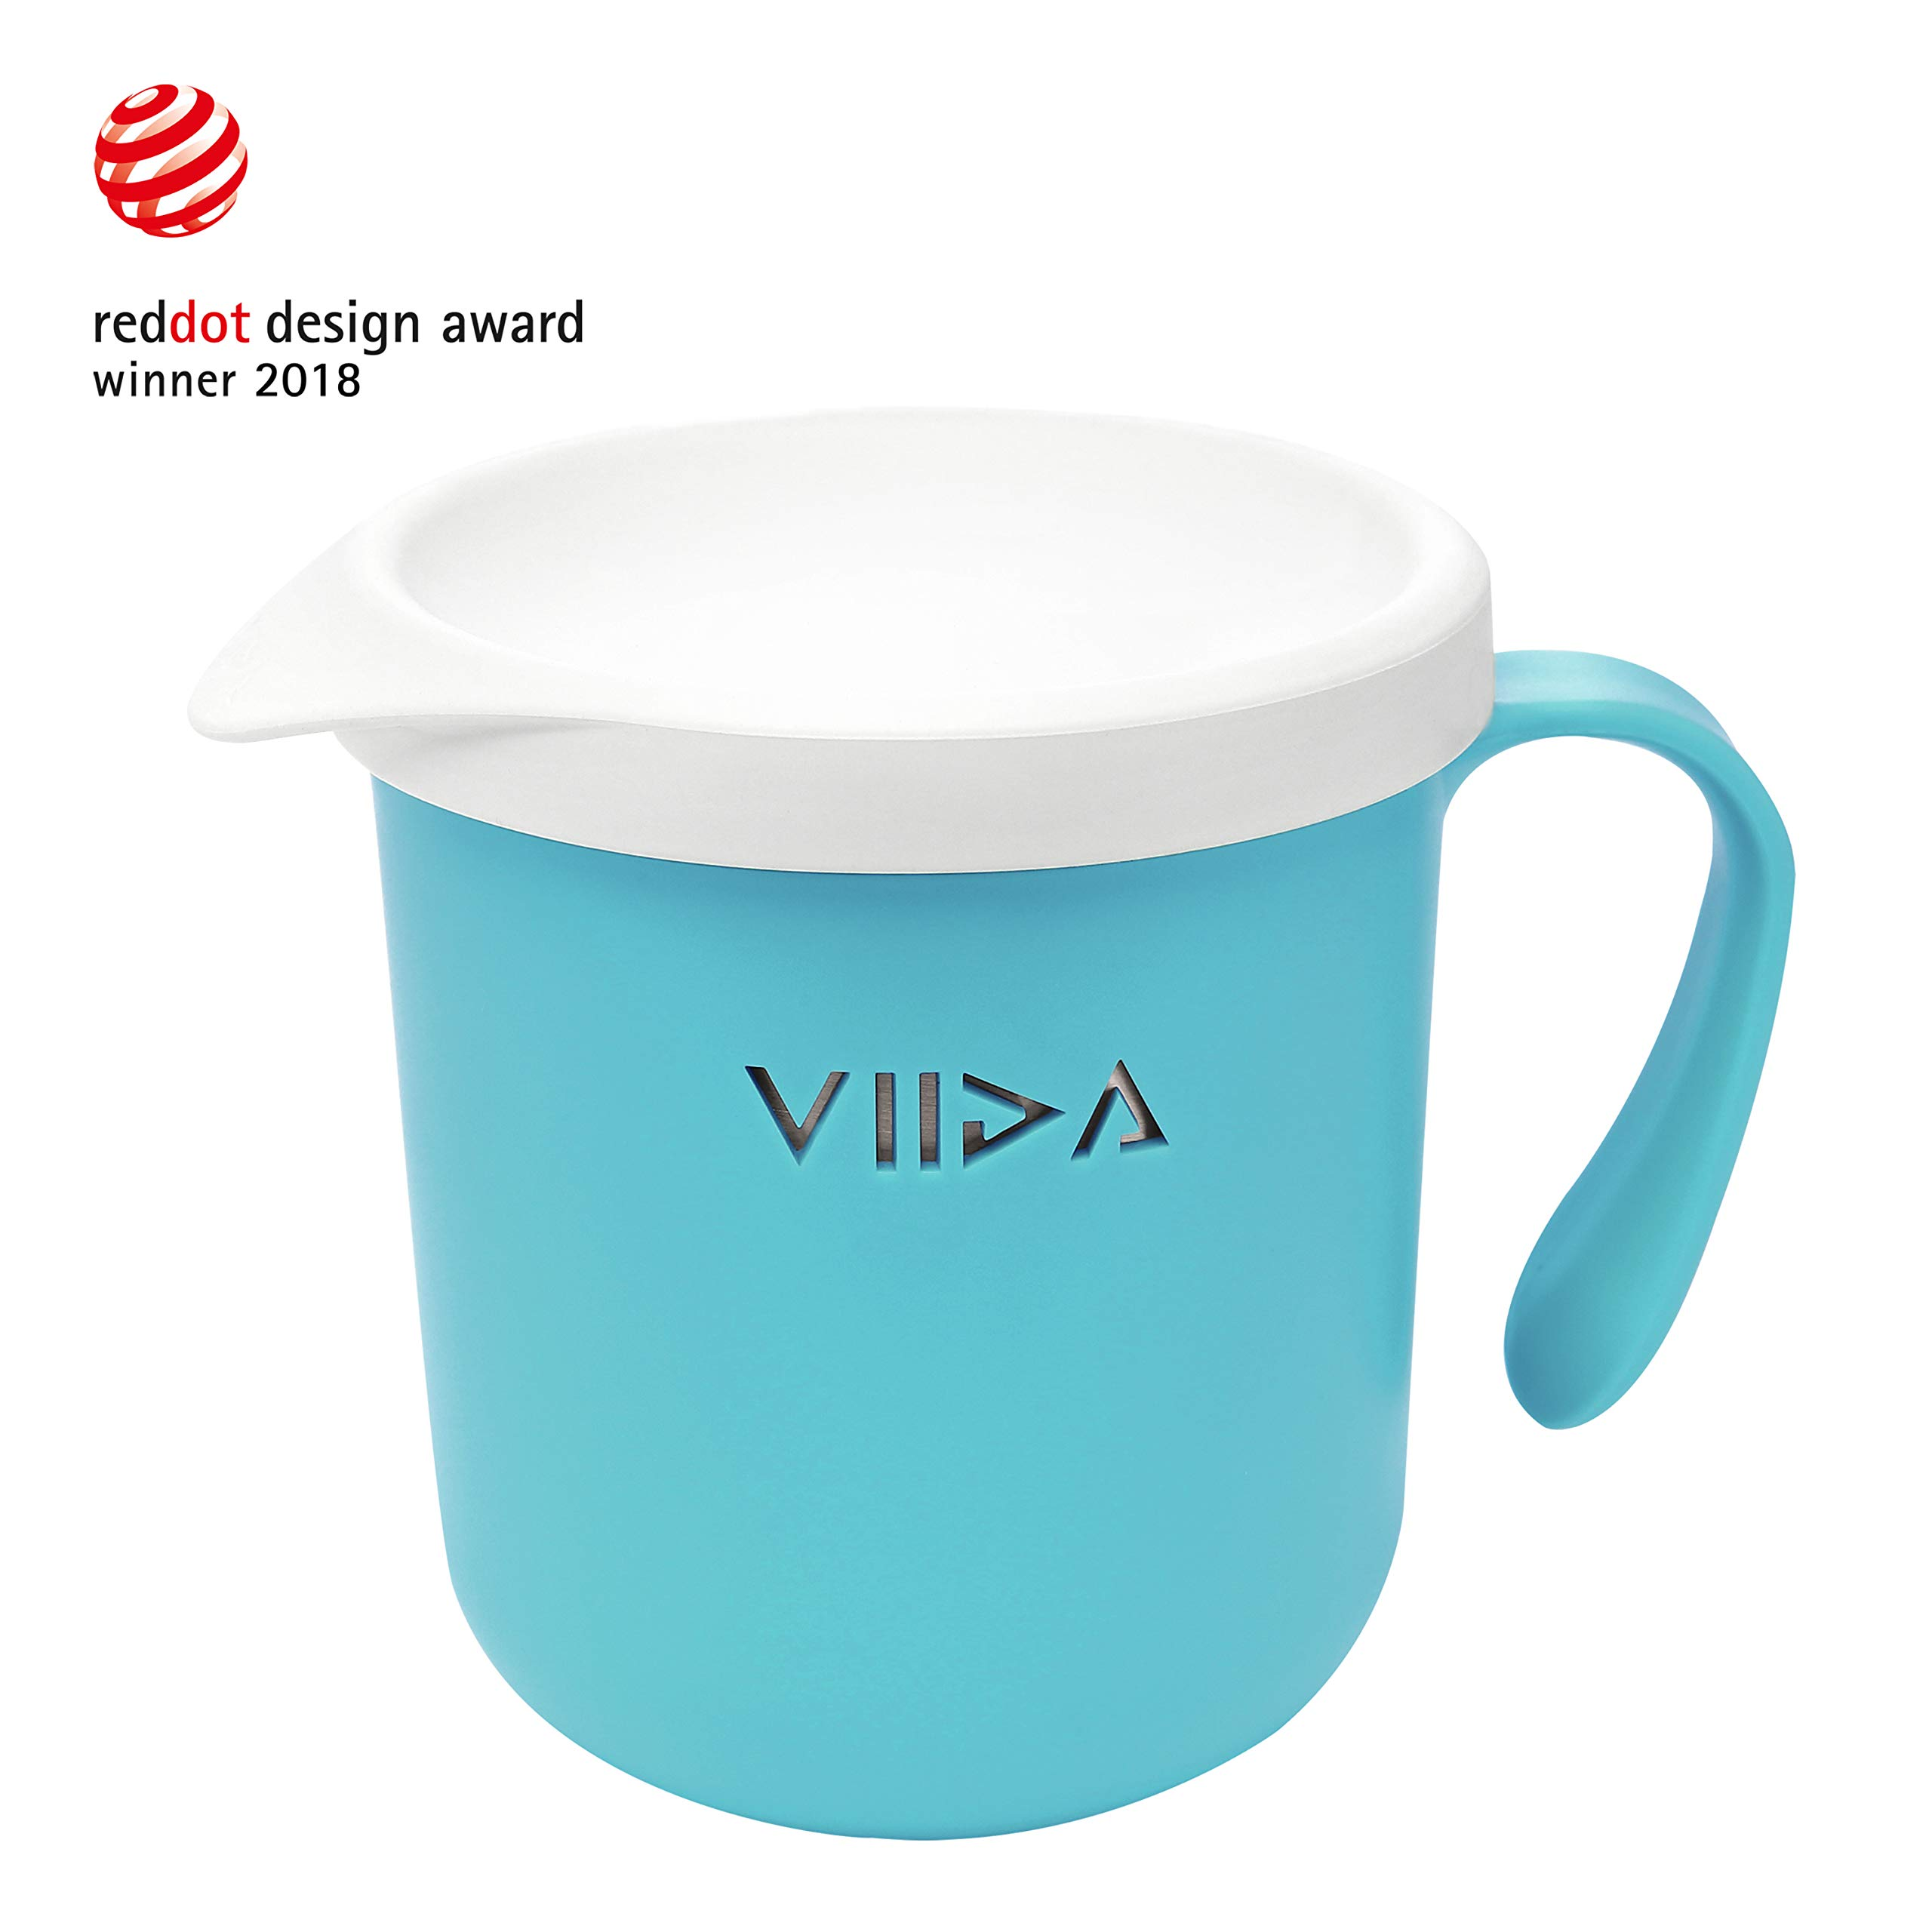 VIIDA Soufflé Cup – Stainless Steel, Detachable, Stackable, Unbreakable, with Lid – Drinking Glasses, Sippy Cup - BPA-Free, Dishwasher-Safe - for Baby, Toddlers, Kids - Baby Blue